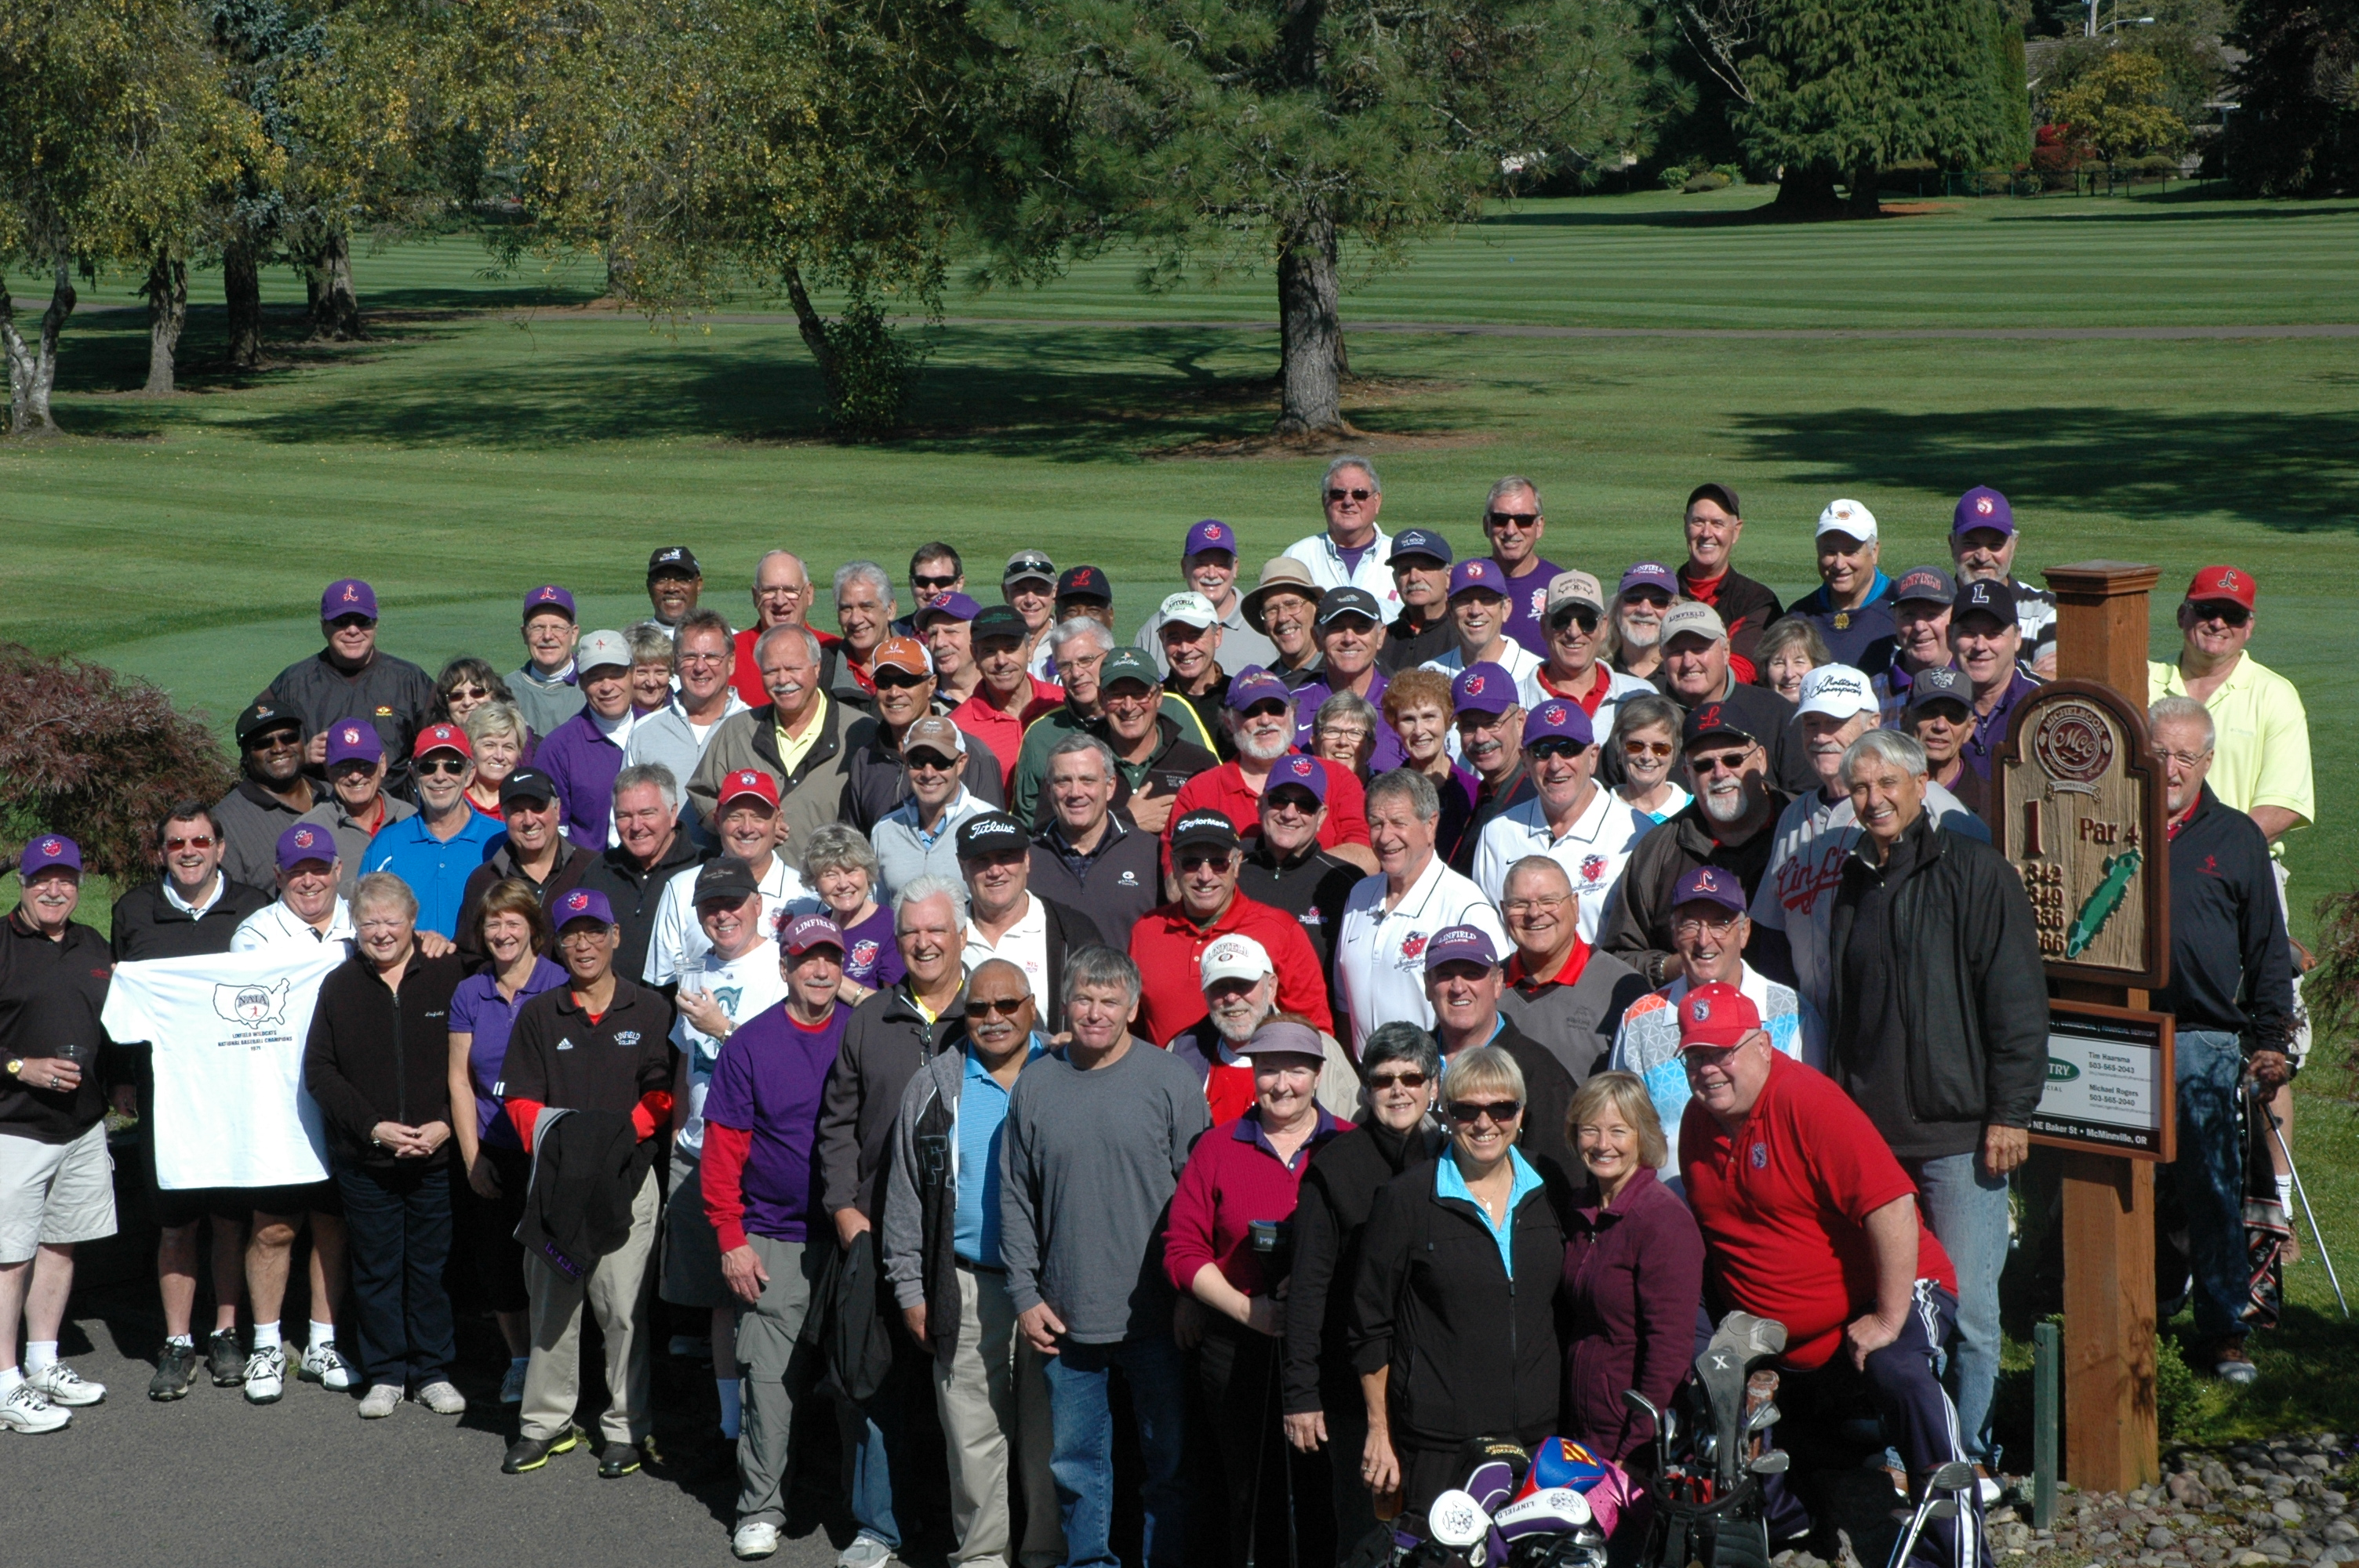 Group shot of the 2013 golf tournament participants. Click to enlarge and see if you reognize all of them.